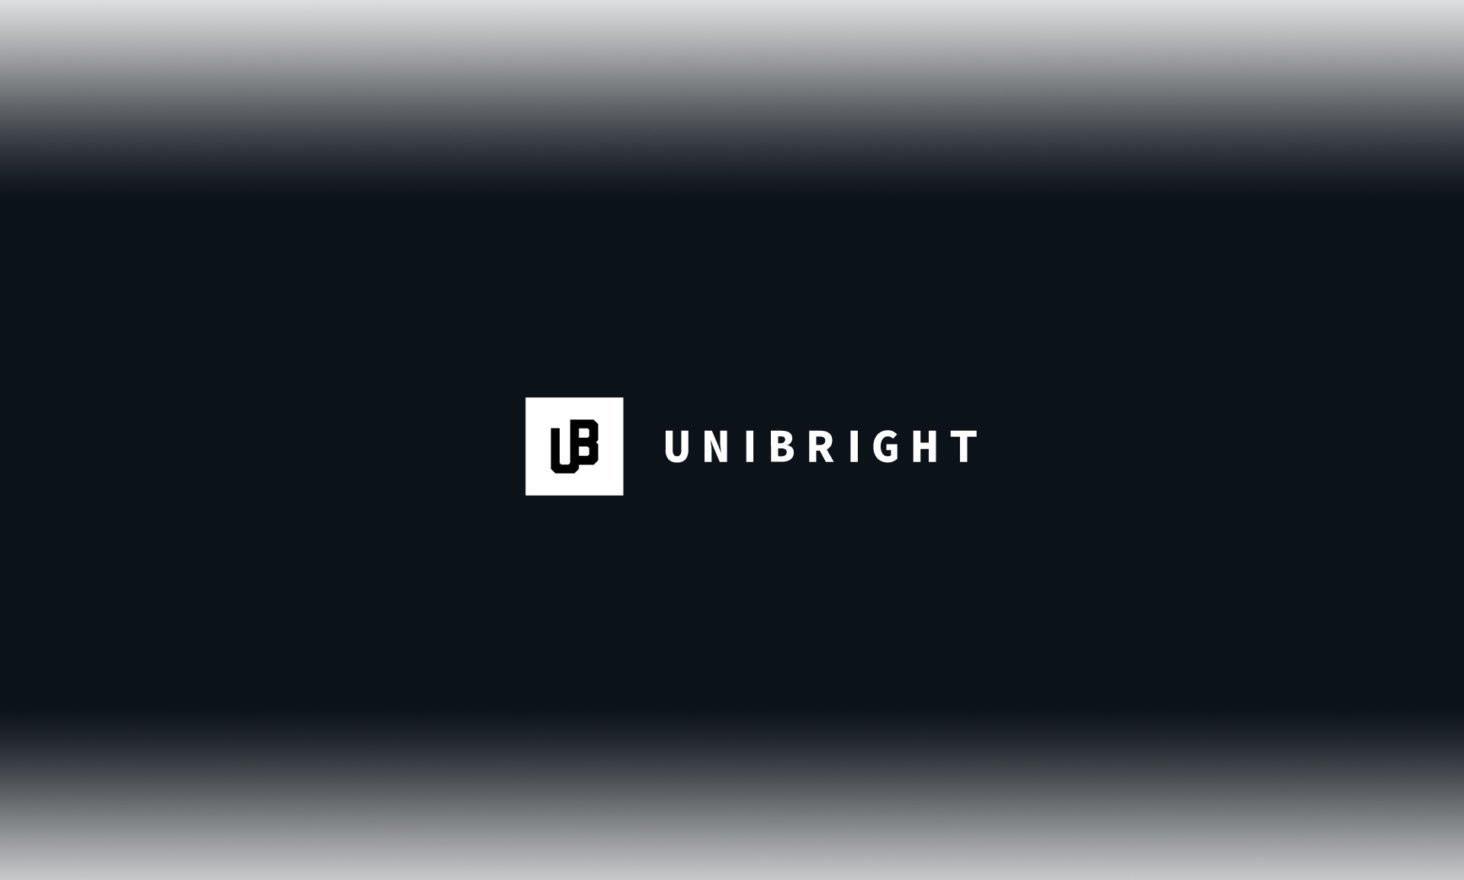 Unibright Announces Their ICO Softcap of 2.2 Million USD Has Been Exceeded During Presale